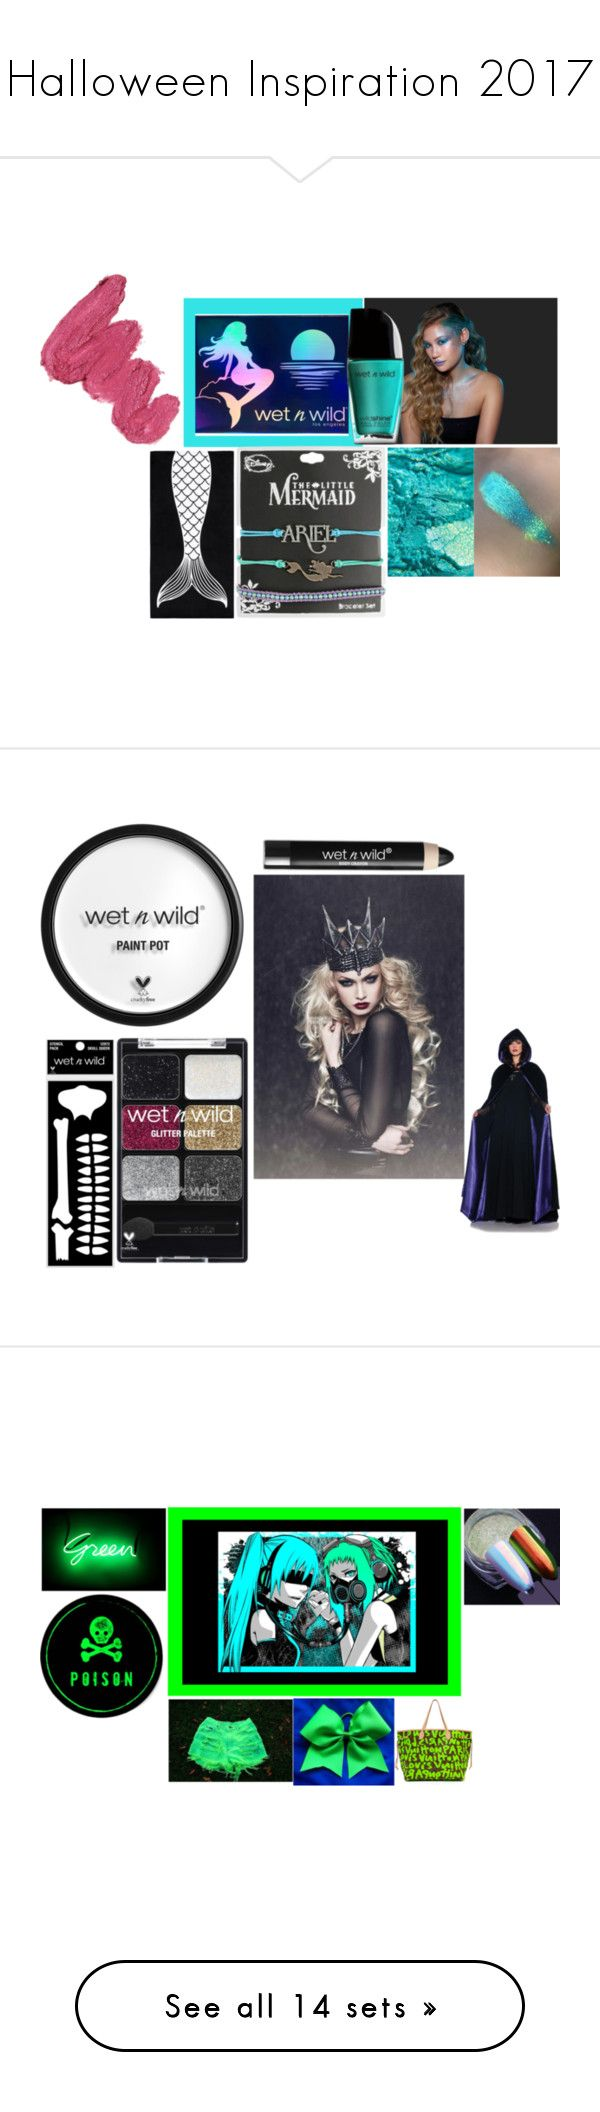 """""""Halloween Inspiration 2017"""" by xzentra-1 ❤ liked on Polyvore featuring halloween2017, beauty, Wet n Wild, Disney, PBteen, Mermaid Salon, mermaid, WetnWild, GAS Jeans and Seletti"""